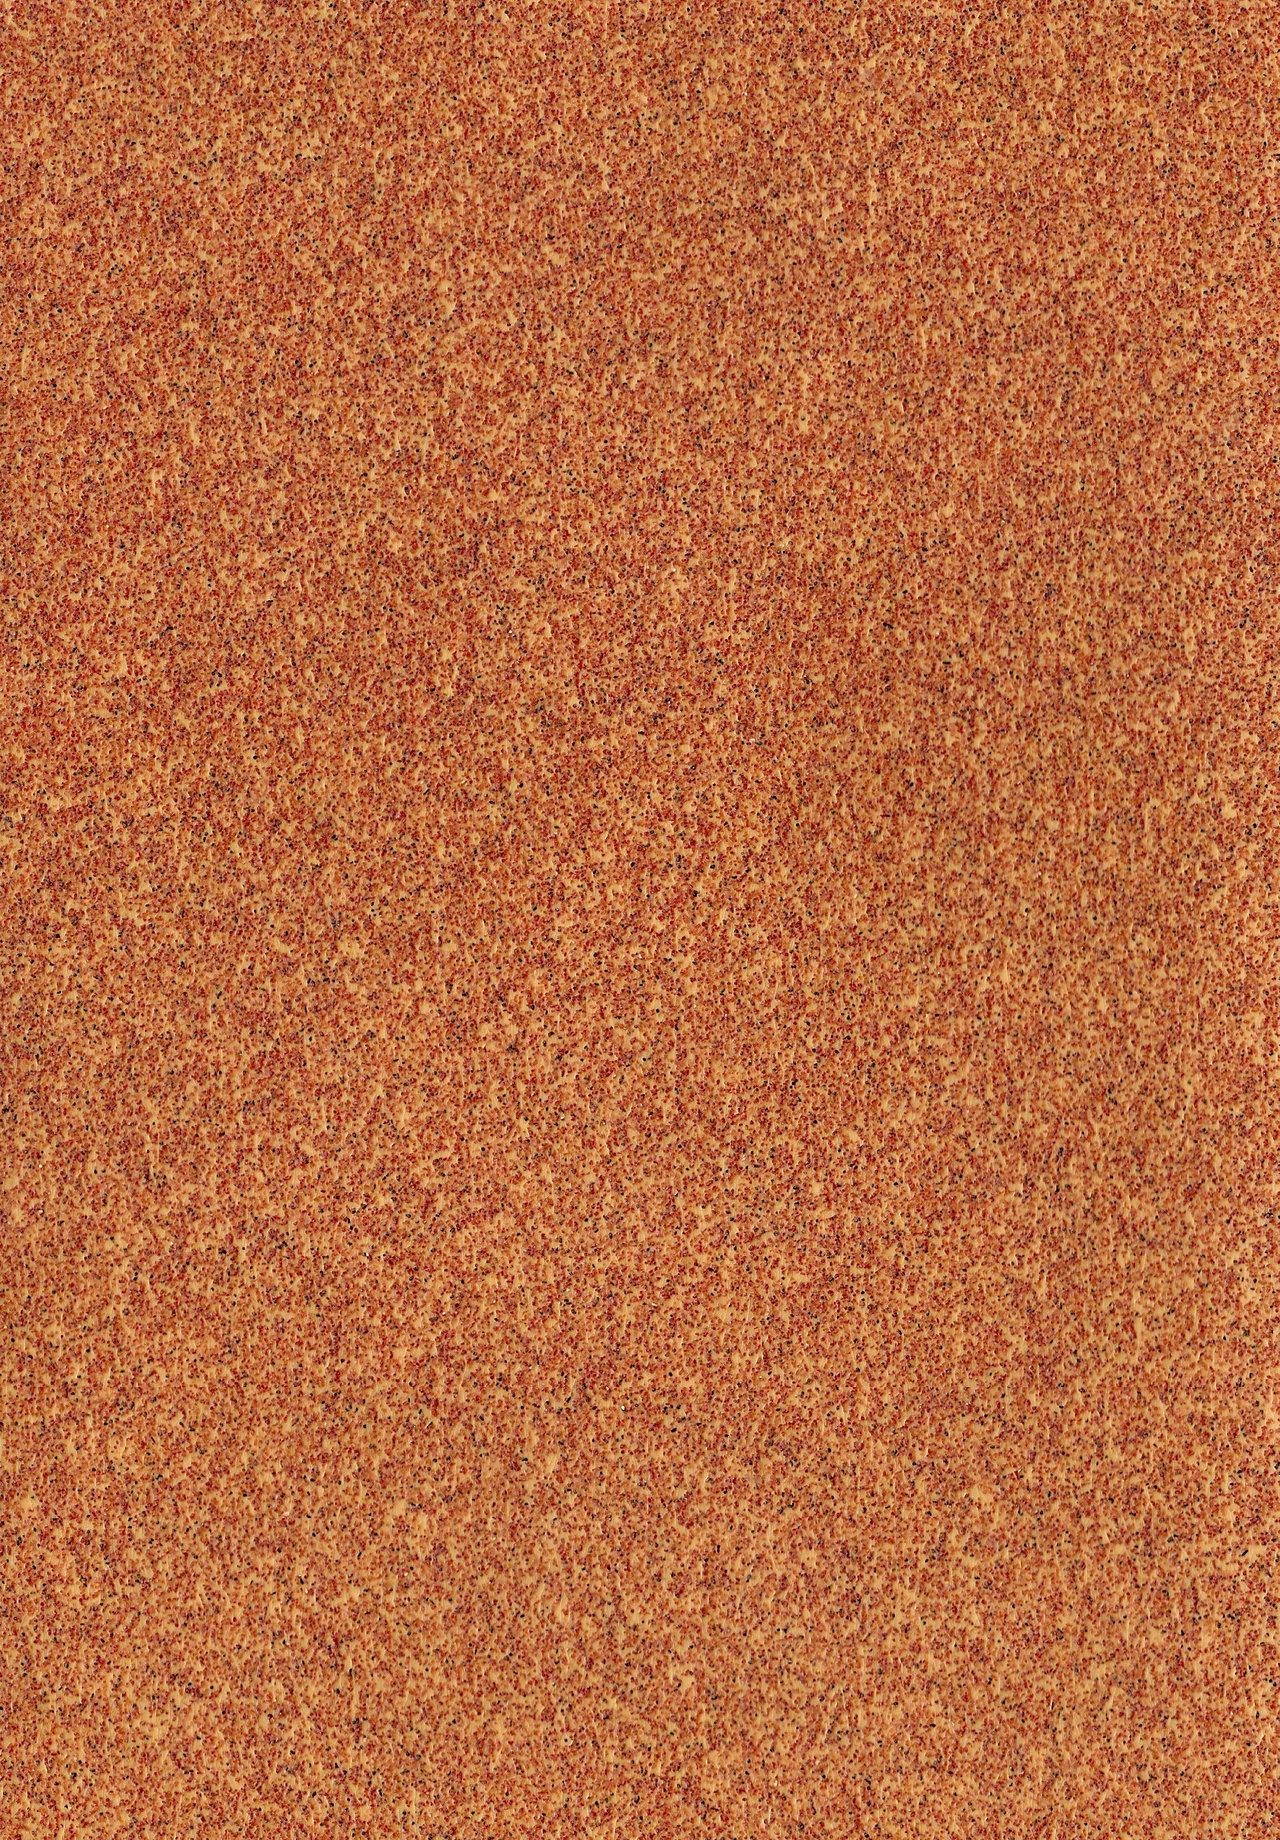 red sand, texture, background, download photo, red sand texture